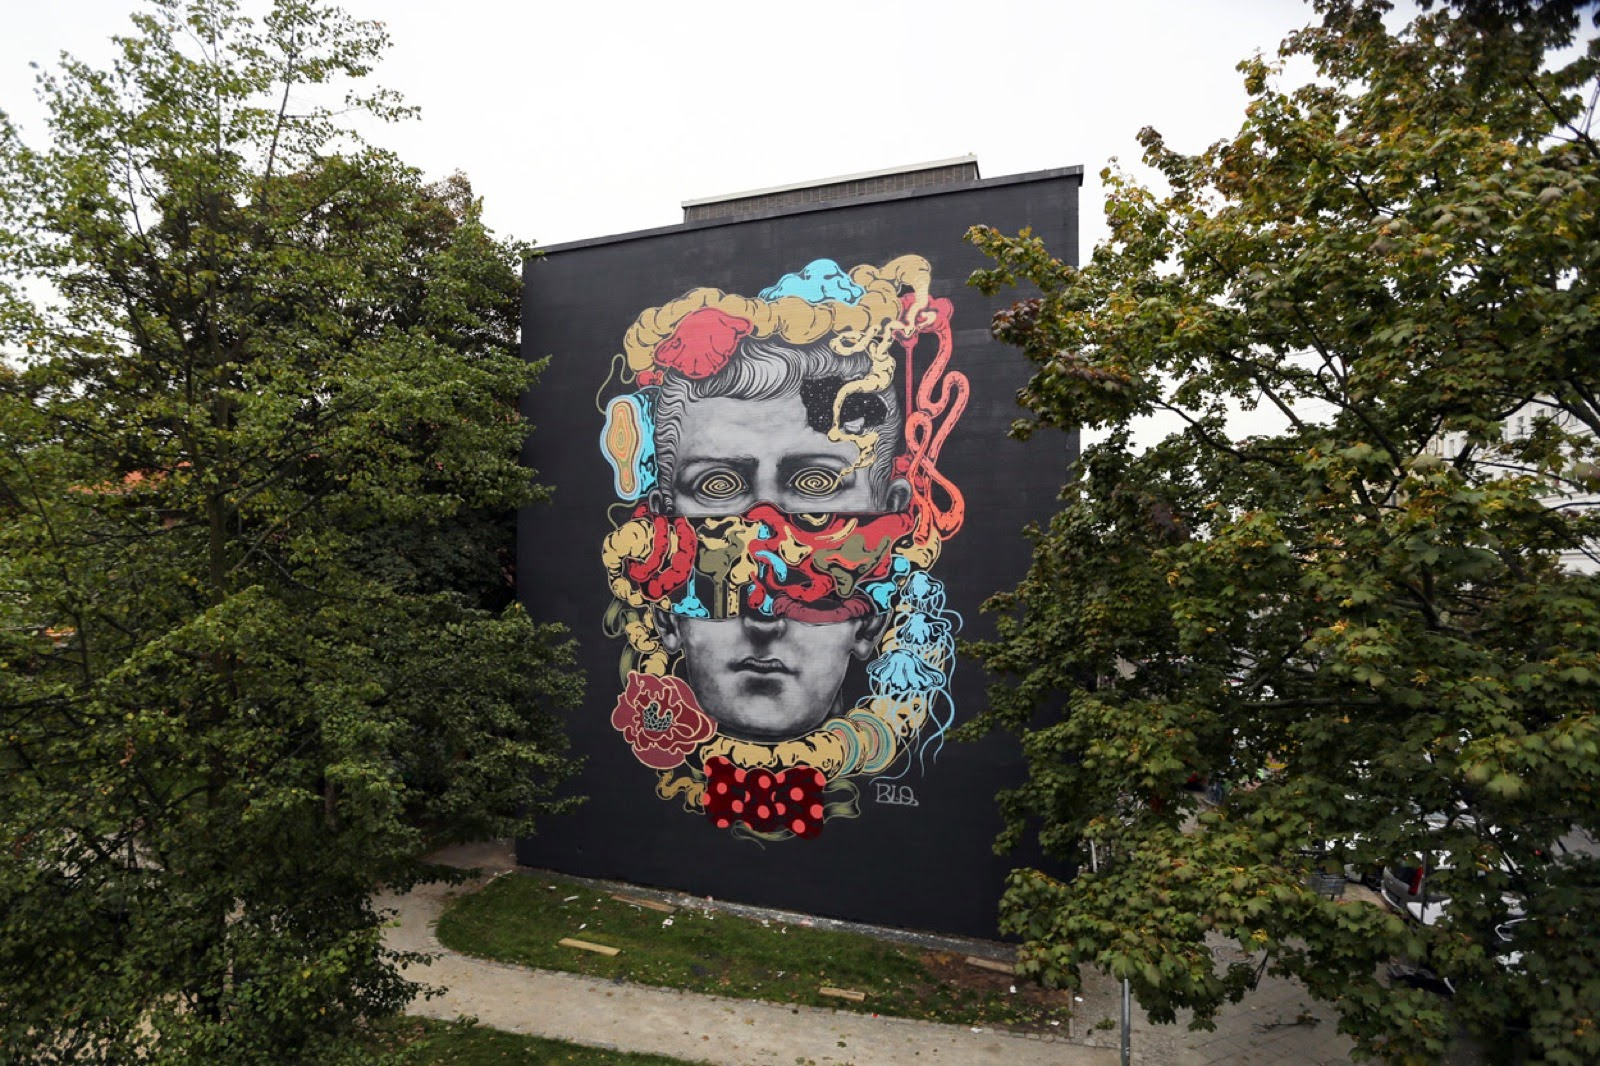 Blo from DMV (Da Mental Vaporz) is currently in Berlin, Germany where he just finished working on this new piece.